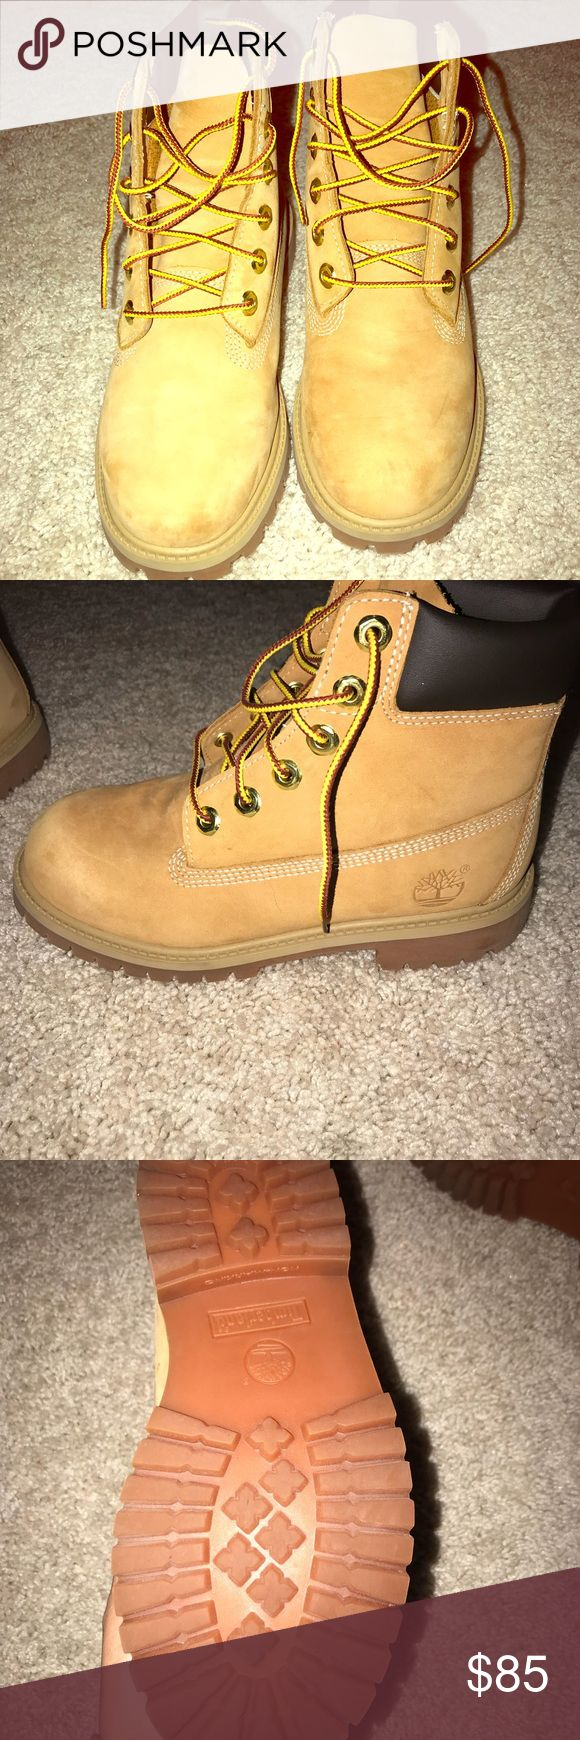 Boys Wheat Timberland Boots Like New, Worn Twice, As Pictured. Boys Grade School Wheat Timberlands! Great Condition!!!!!!!!! Timberland Shoes Boots